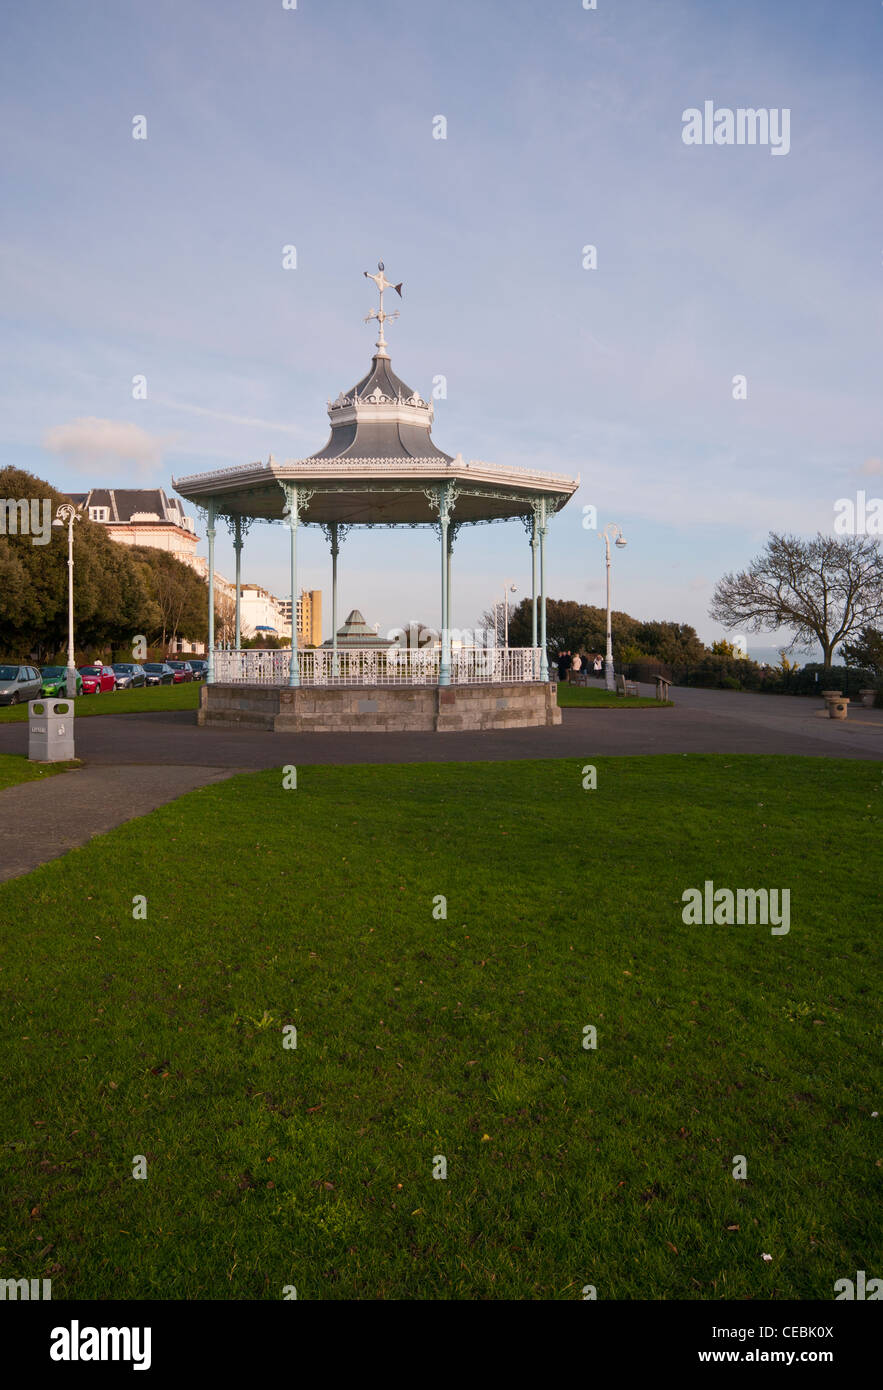 The Bandstand On The Promenade The Leas Folkestone Kent UK - Stock Image